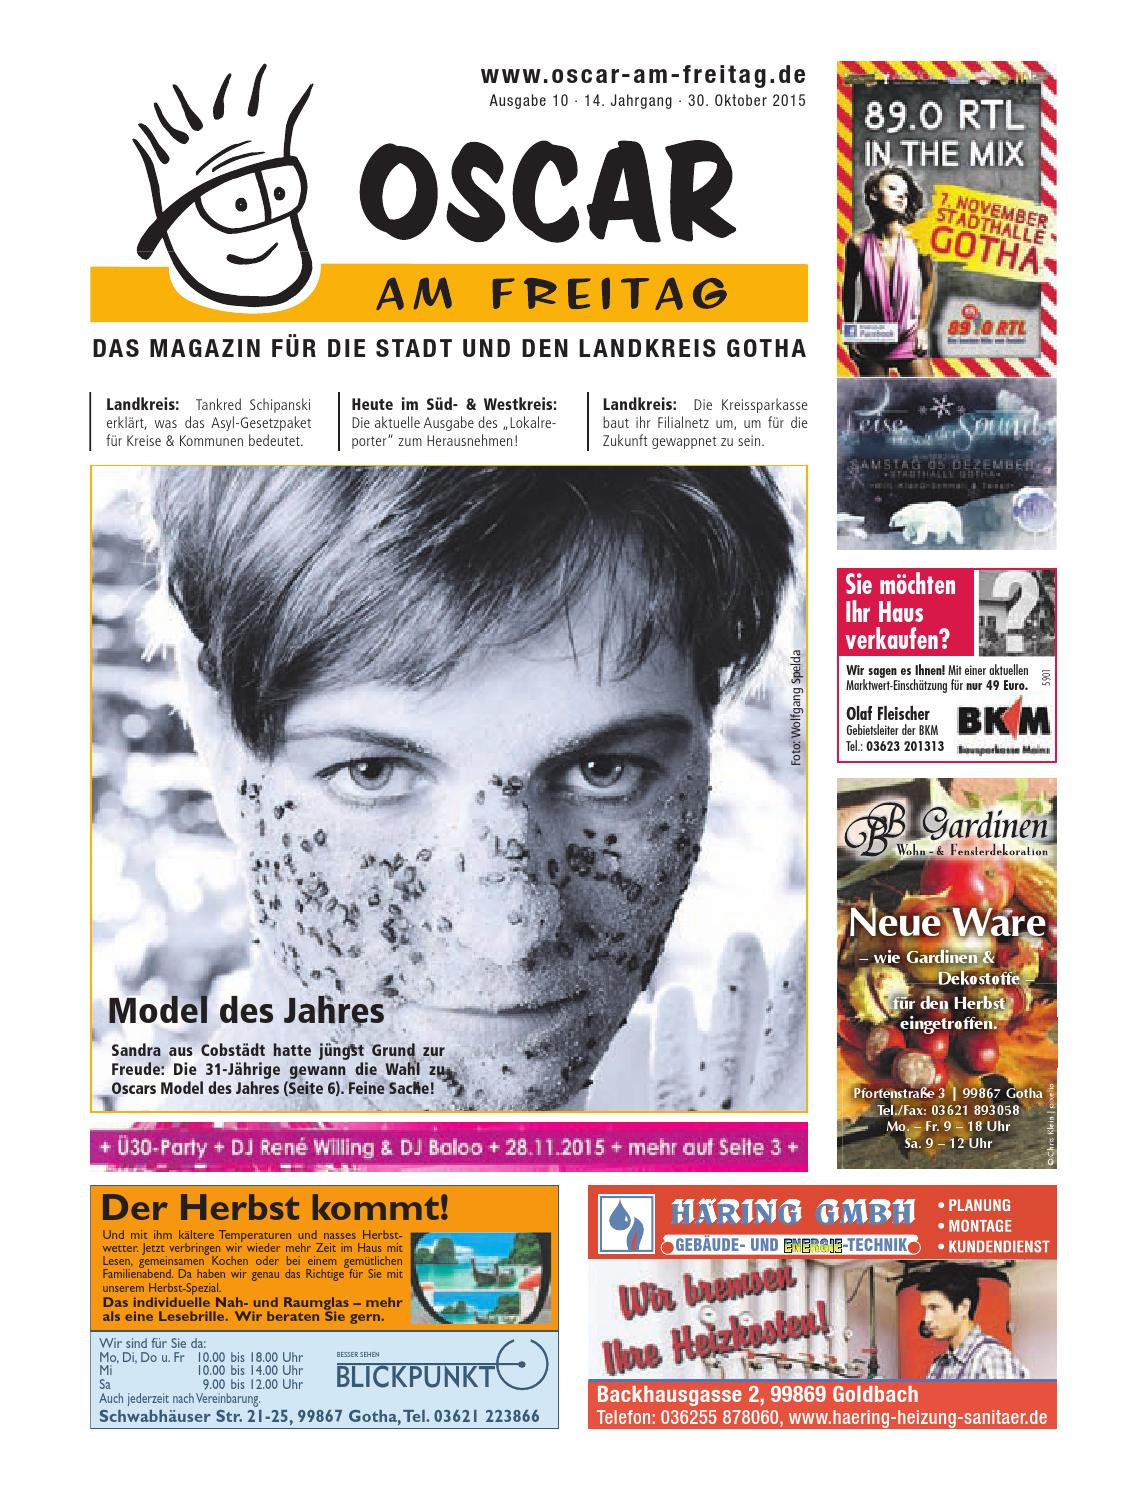 Oscar Am Freitag Gotha By Msb Verlags Gmbh Co Kg Issuu